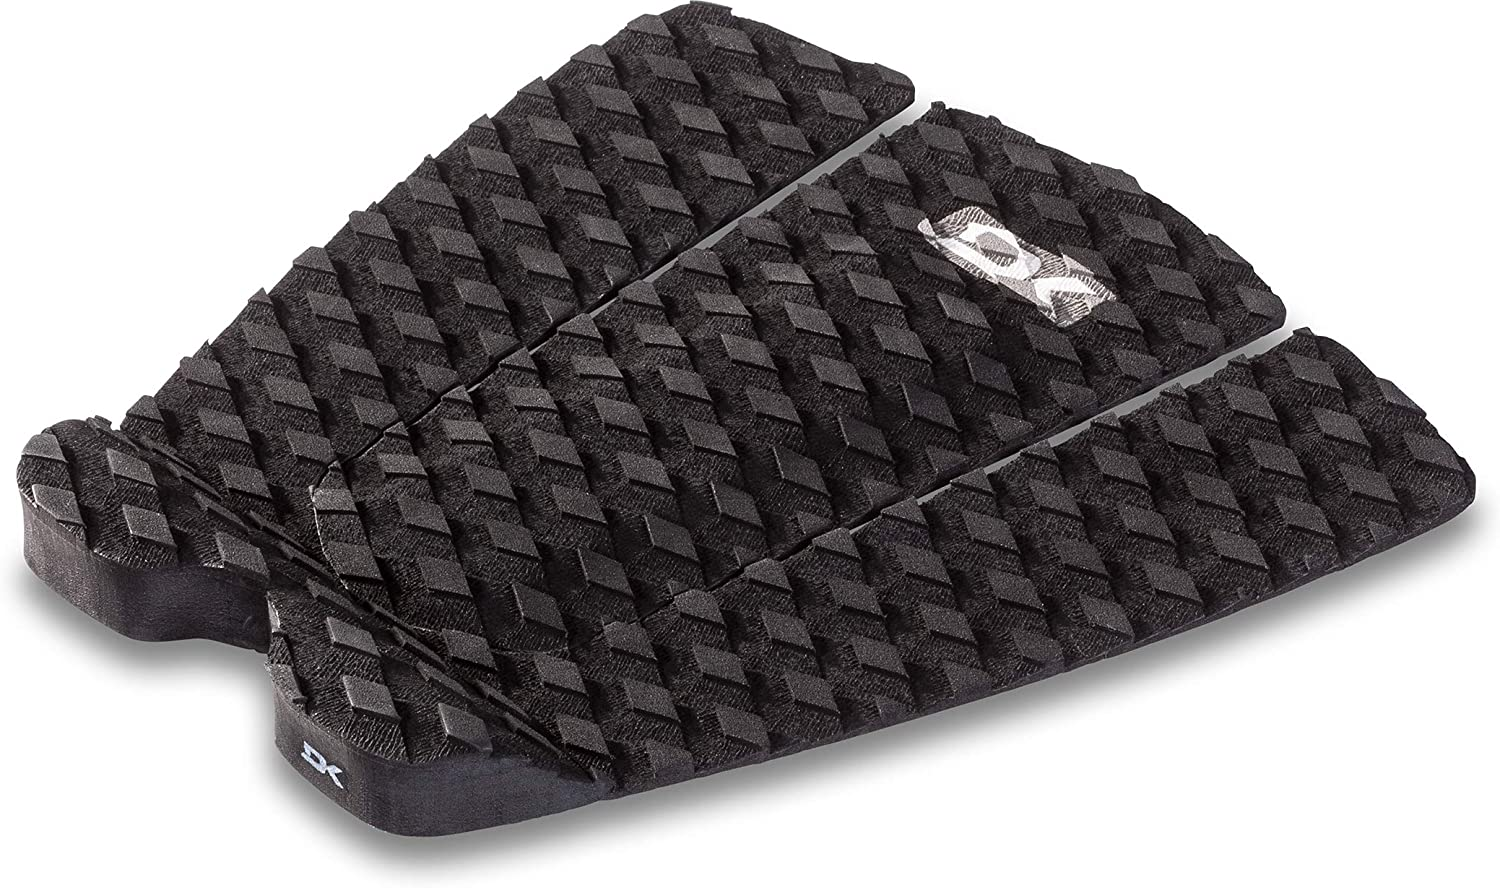 Dakine Andy Irons Pro Surf - Black Traction Super intense SALE Pad 40% OFF Cheap Sale